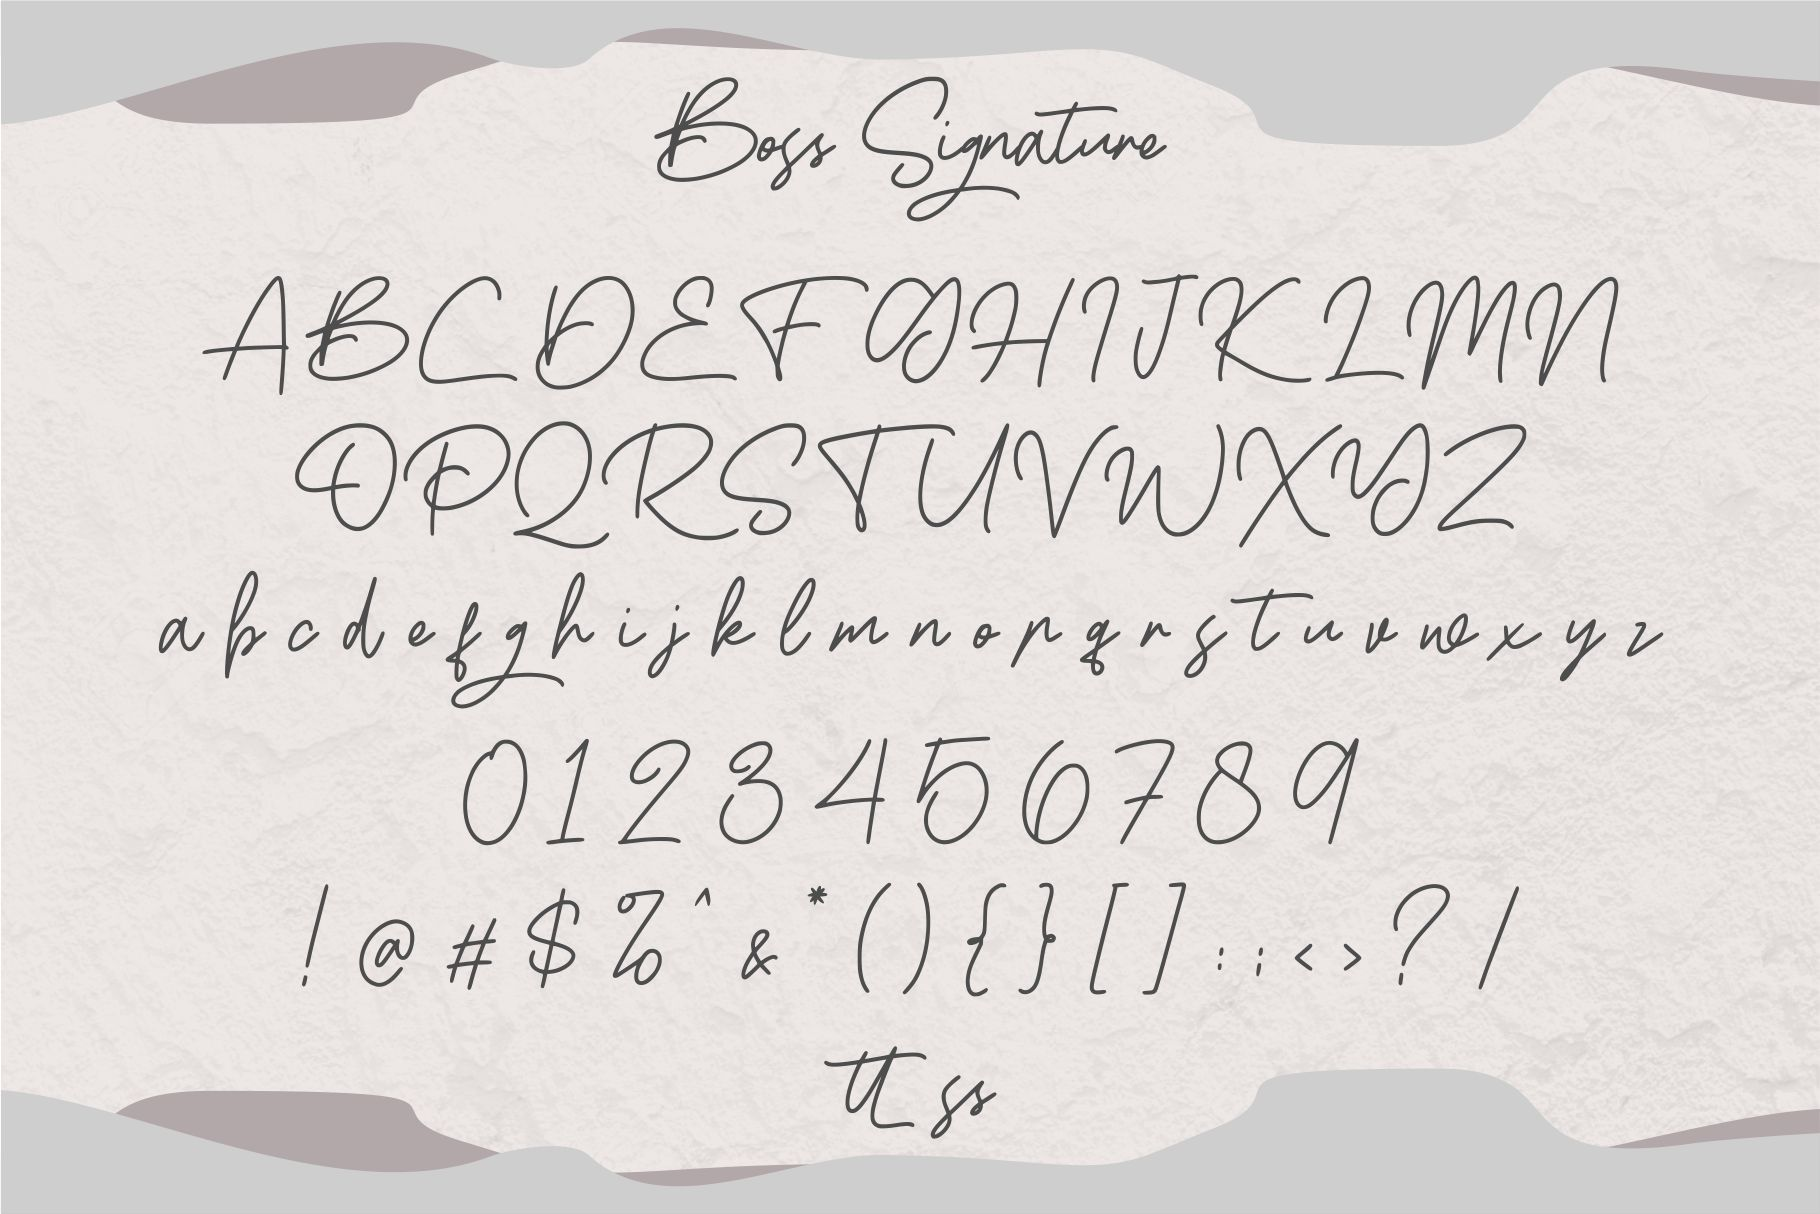 Boss Signature example image 7